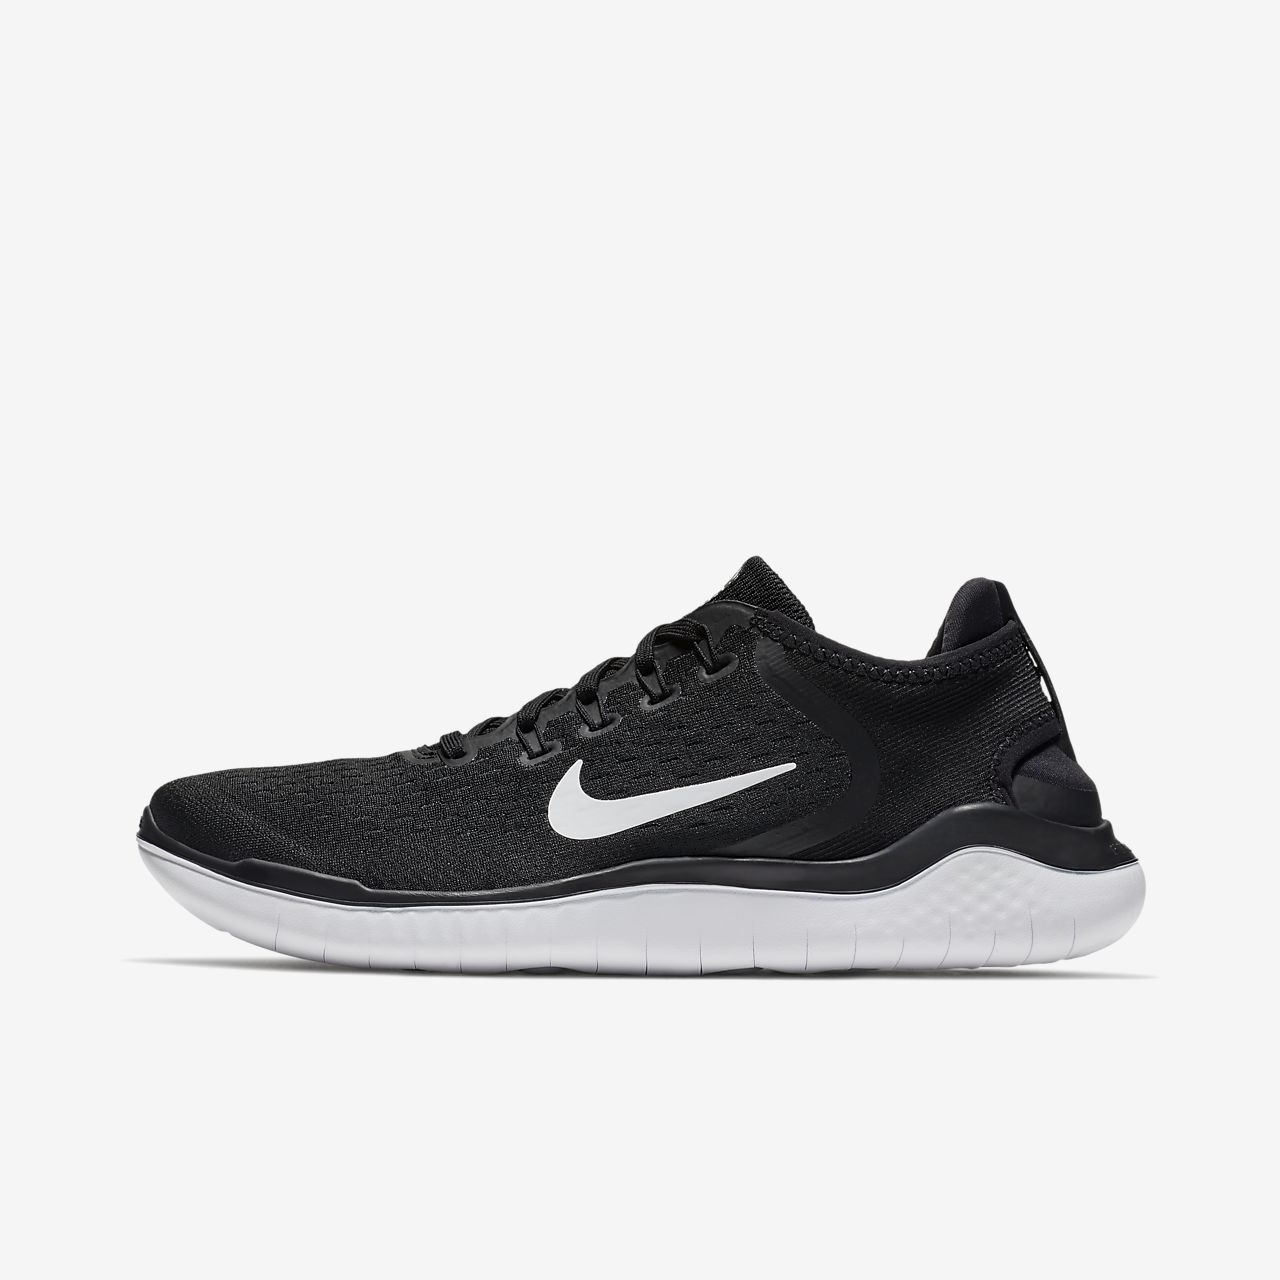 088a17653314 Nike Free RN 2018 Men s Running Shoe. Nike.com IN